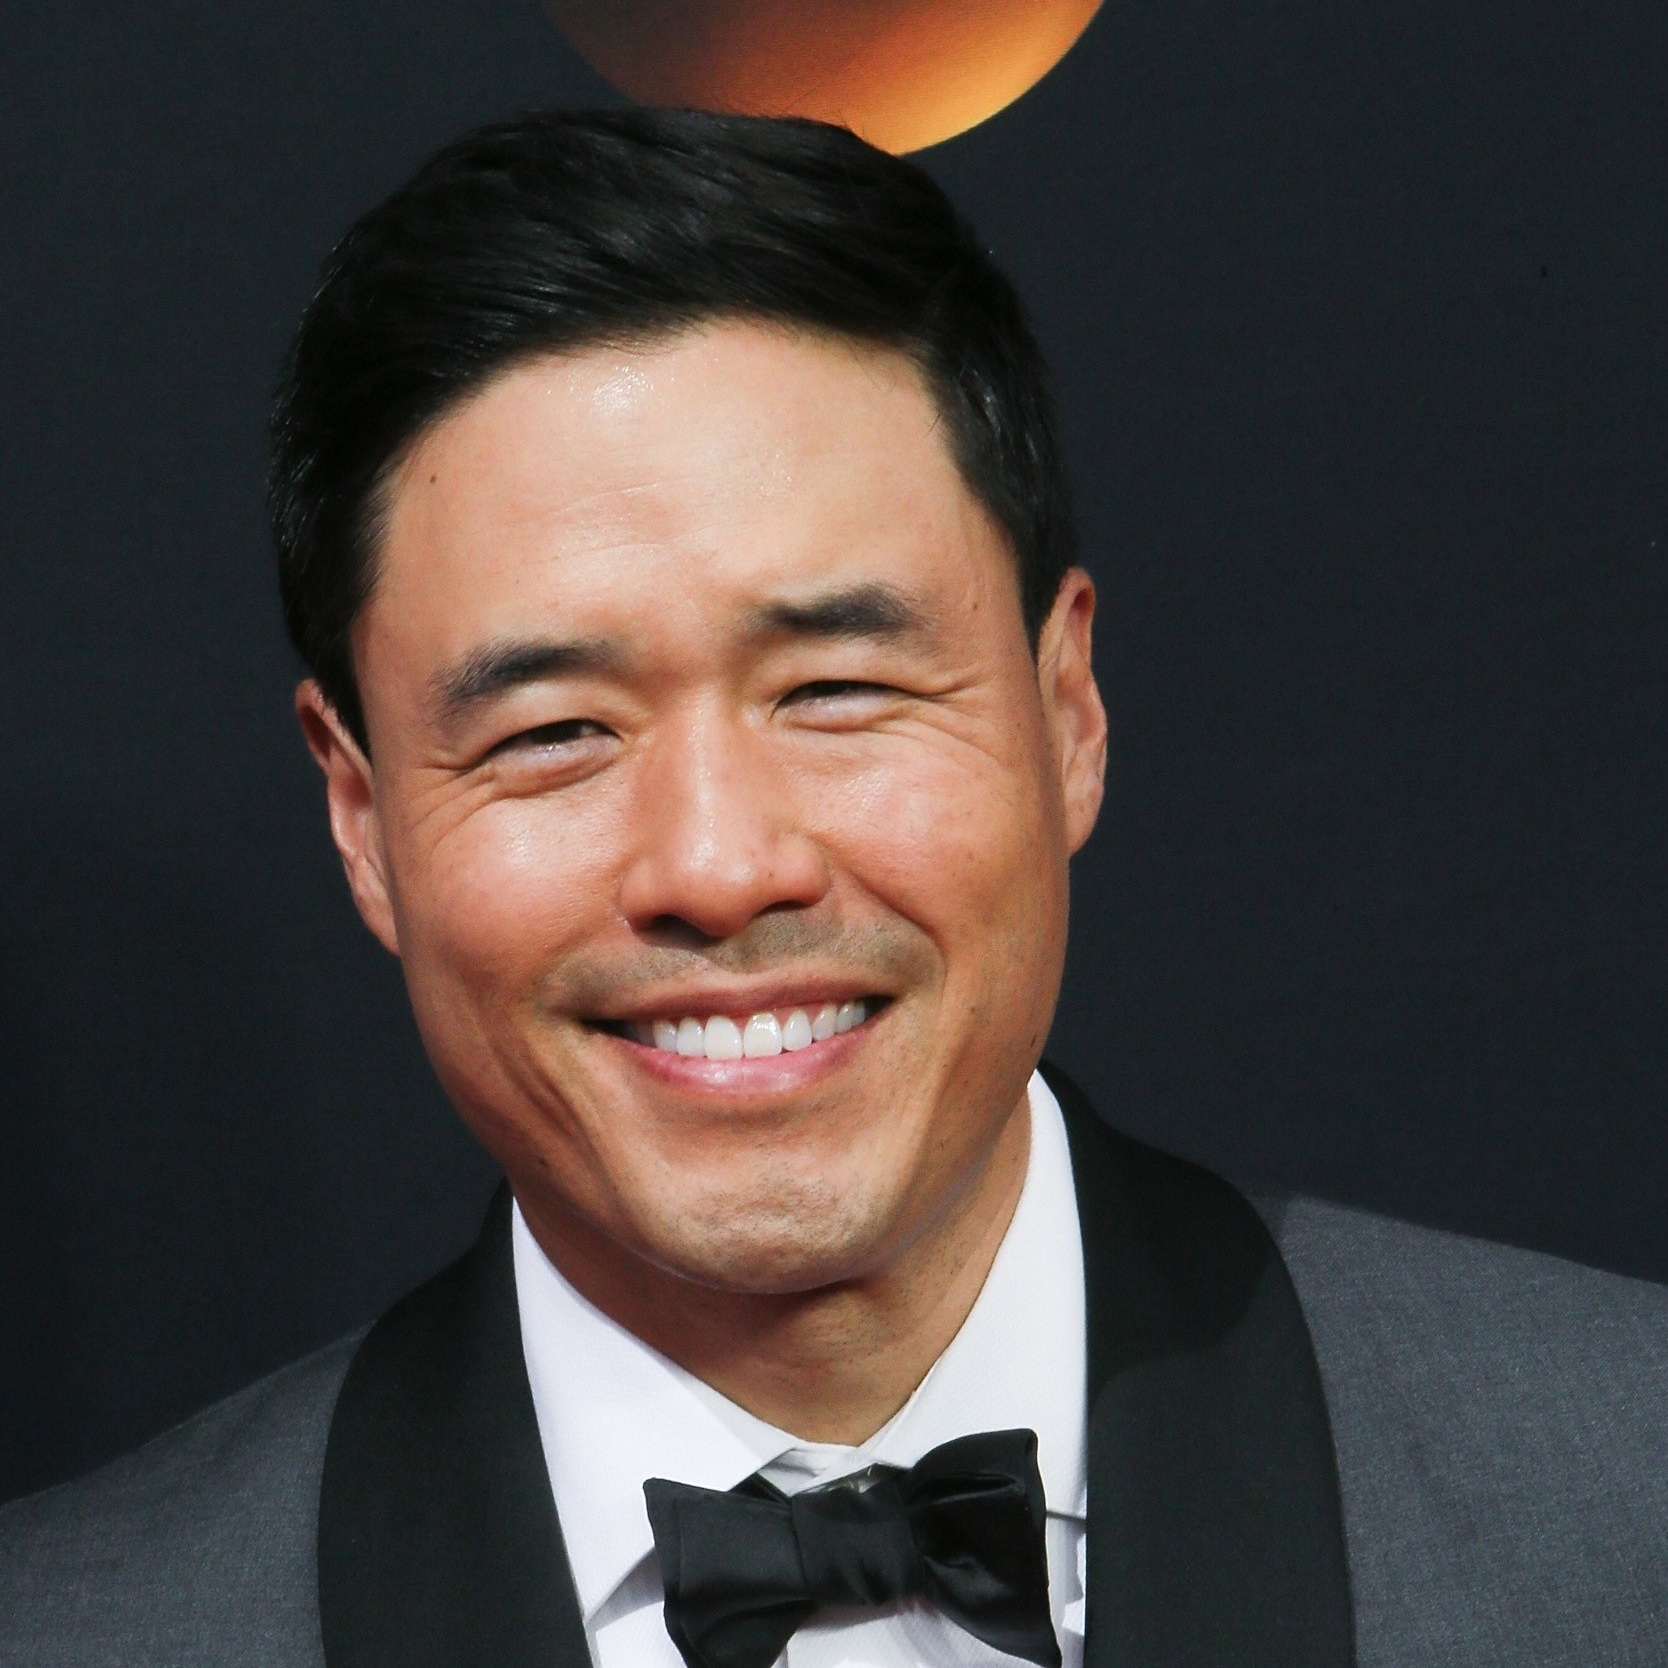 Randall Park  most recently   co-wrote and starred in the Netflix hit ALWAYS BE MY MAYBE. He also also appeared in blockbuster films such as AQUAMAN and ANTMAN AND THE WASP and plays Louis Huang on ABC's FRESH OFF THE BOAT.